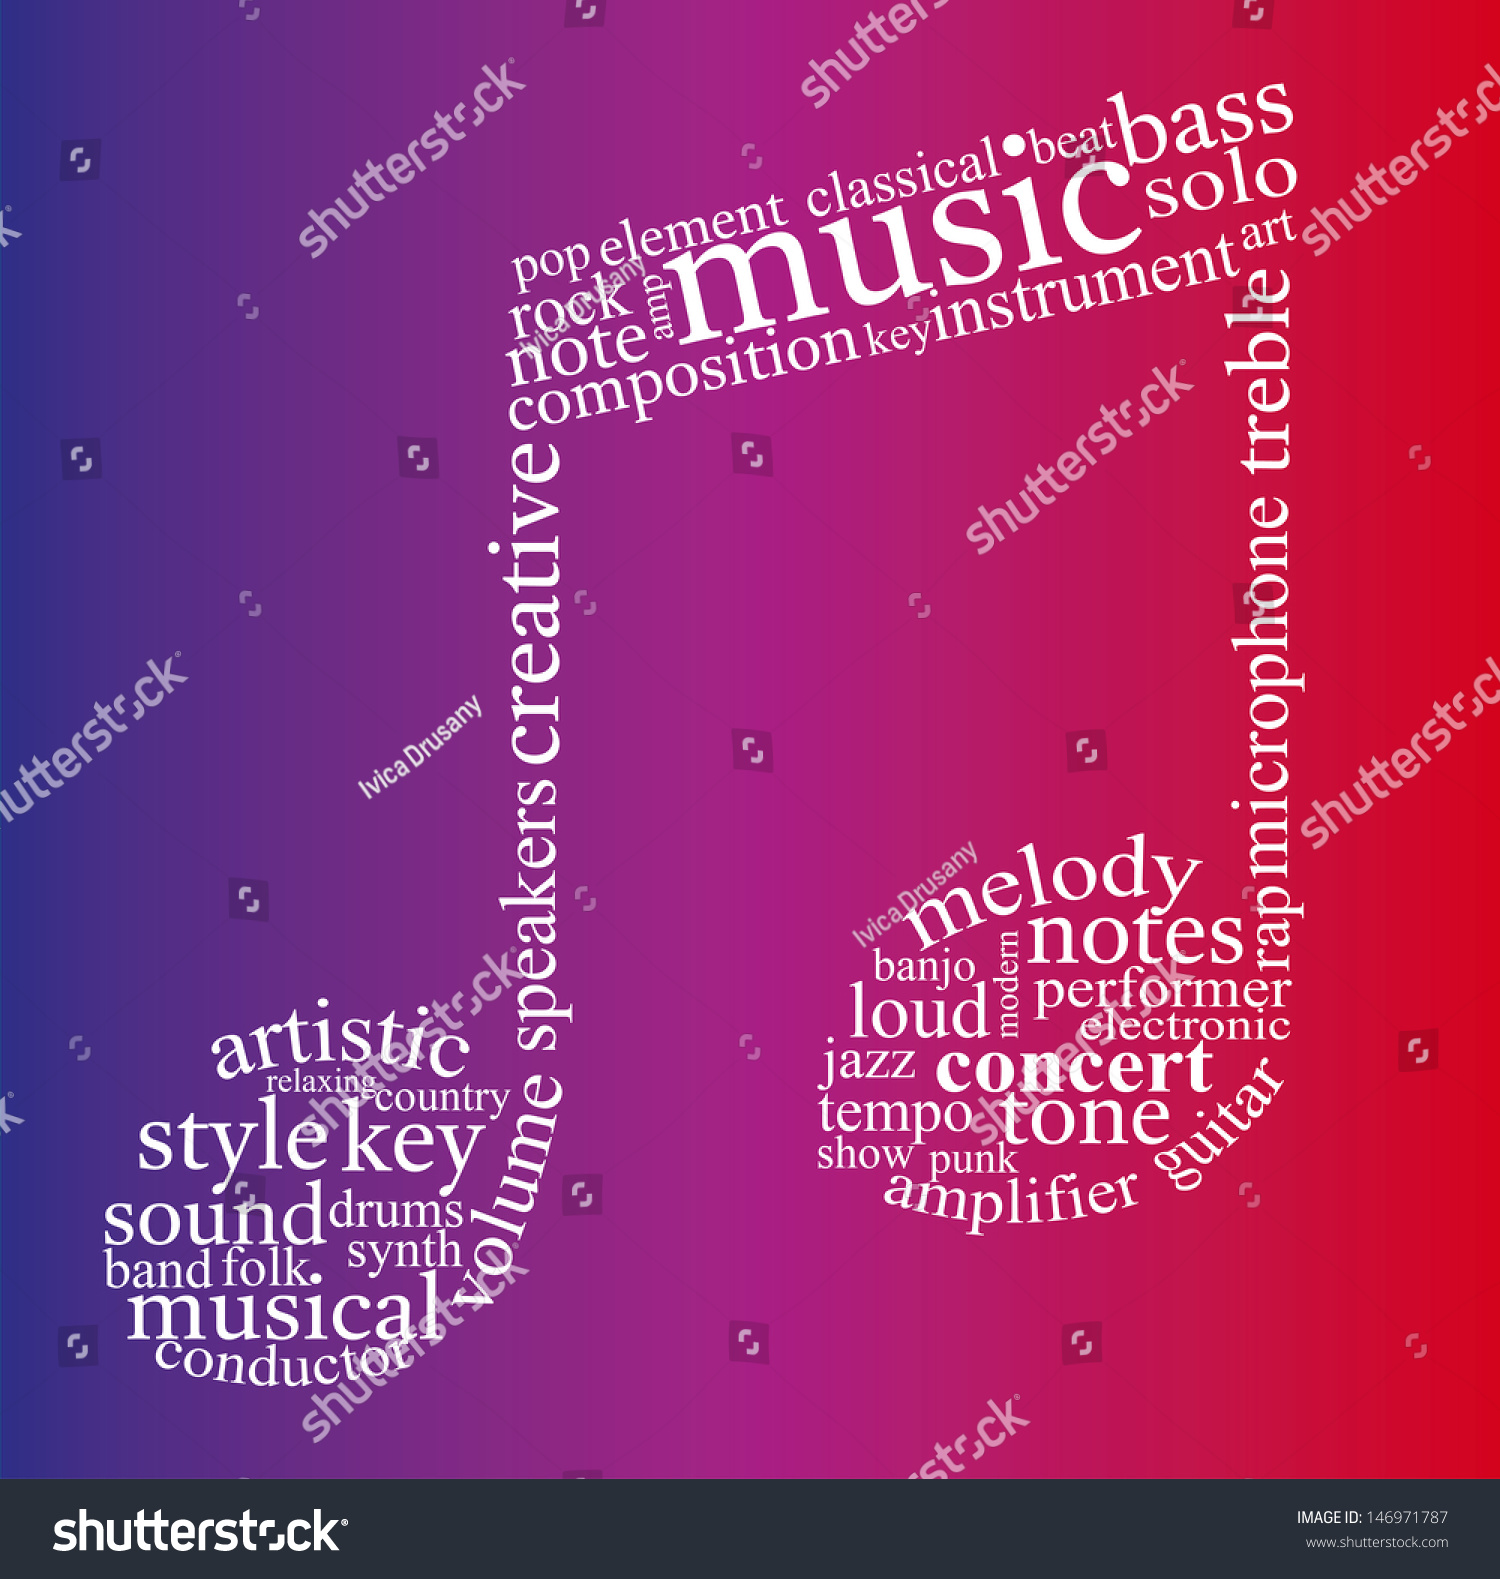 Musician Synonyms, Musician Antonyms - Merriam-Webster